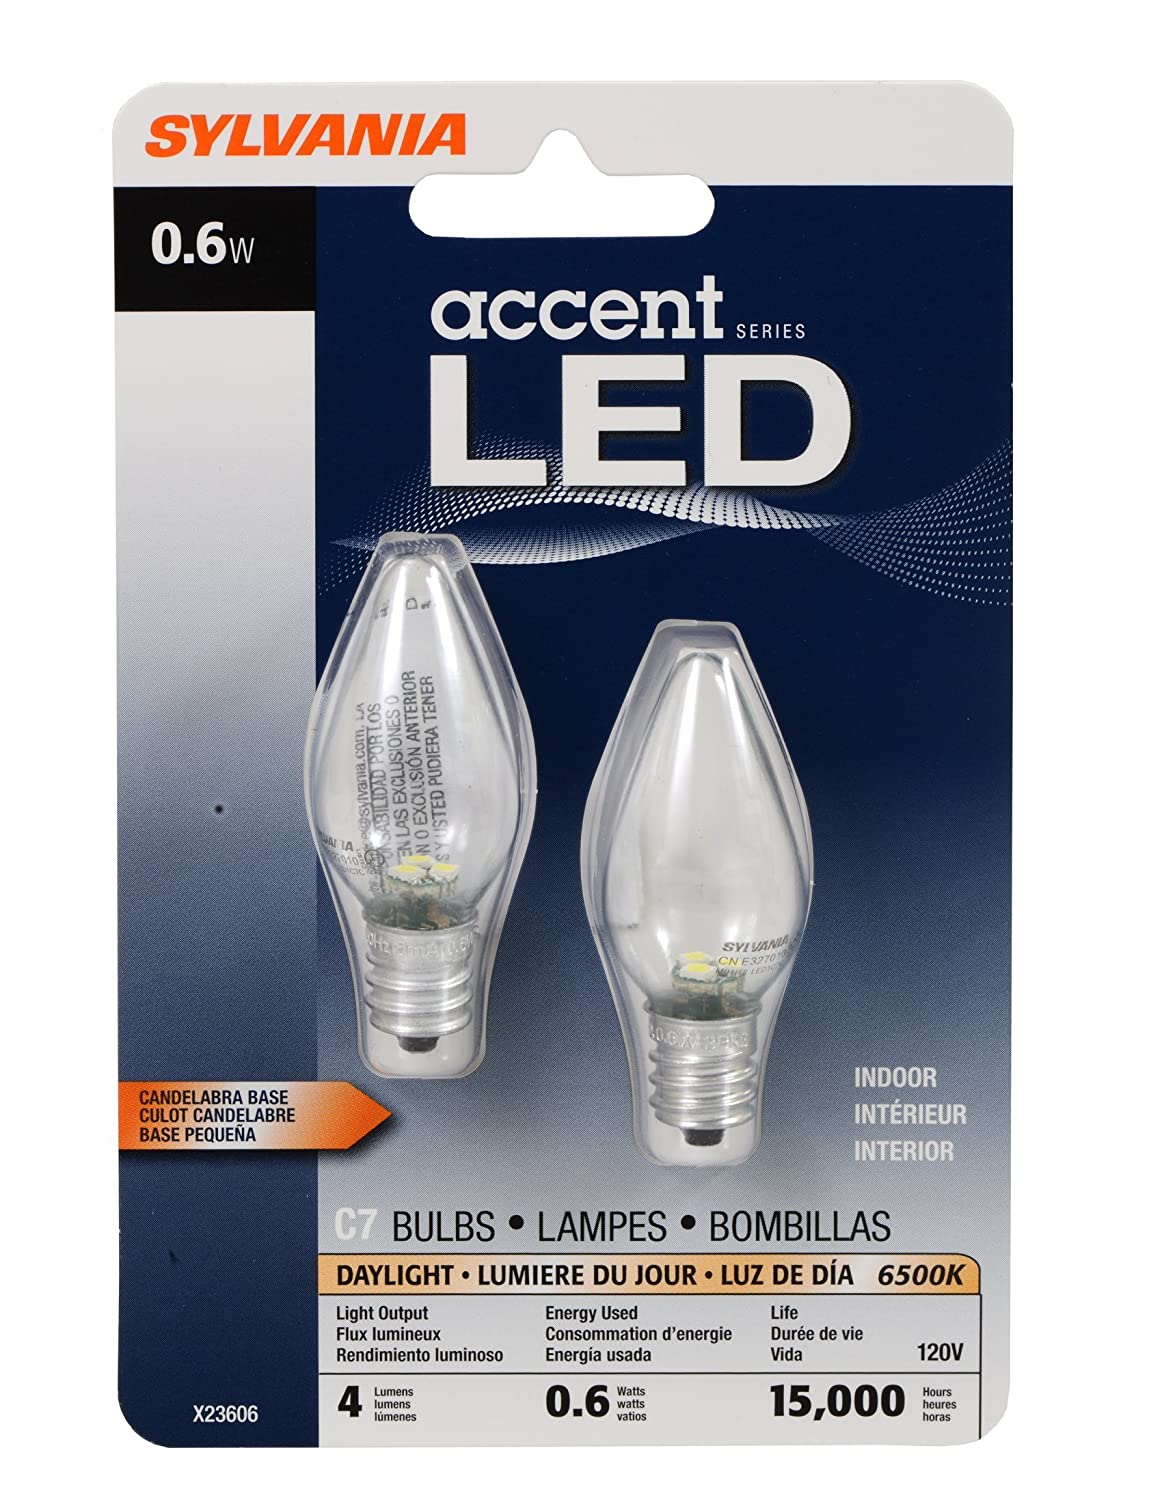 Sylvania 78563 0.6 Watt Accent LED C7 Night Light Bulb ...